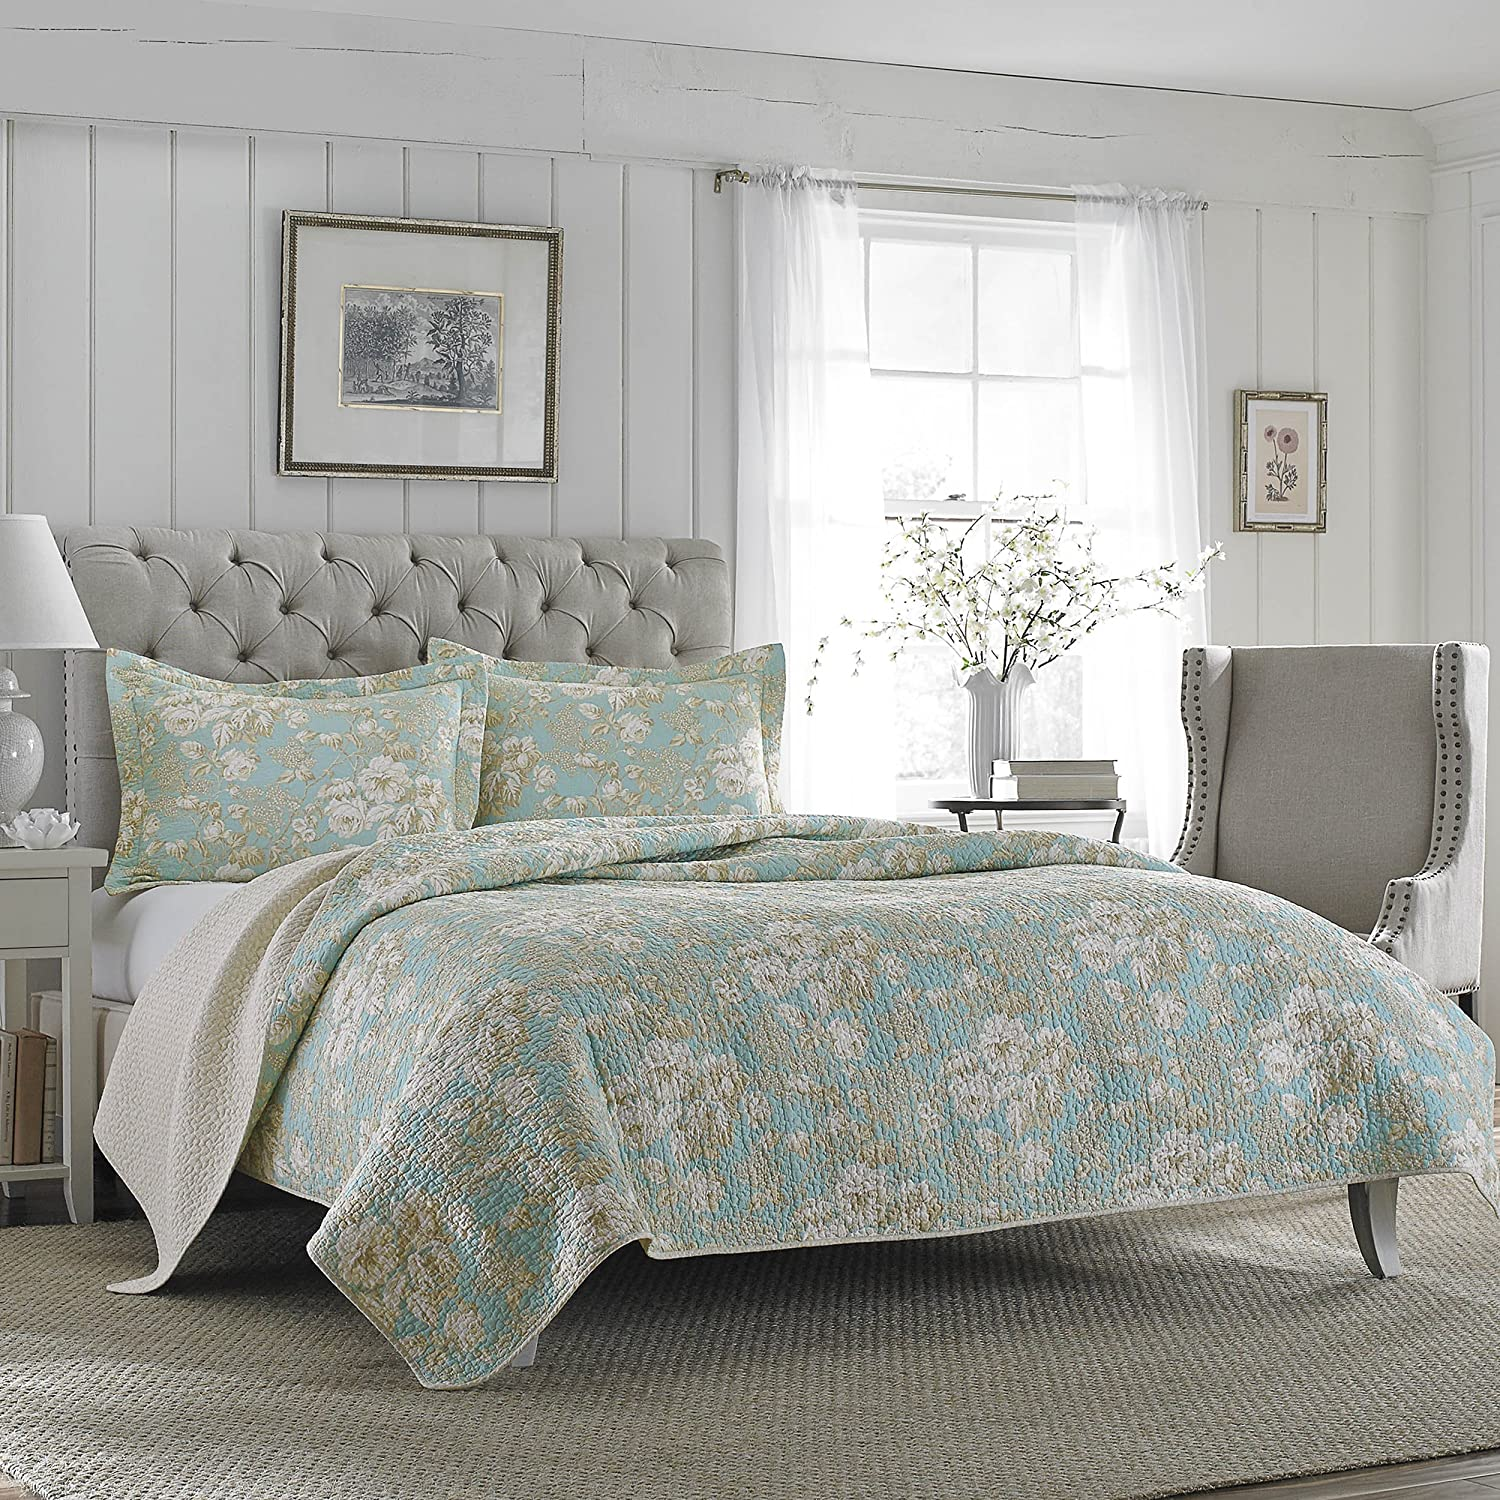 Laura Ashley Brompton Serene Reversible Quilt Set, Twin